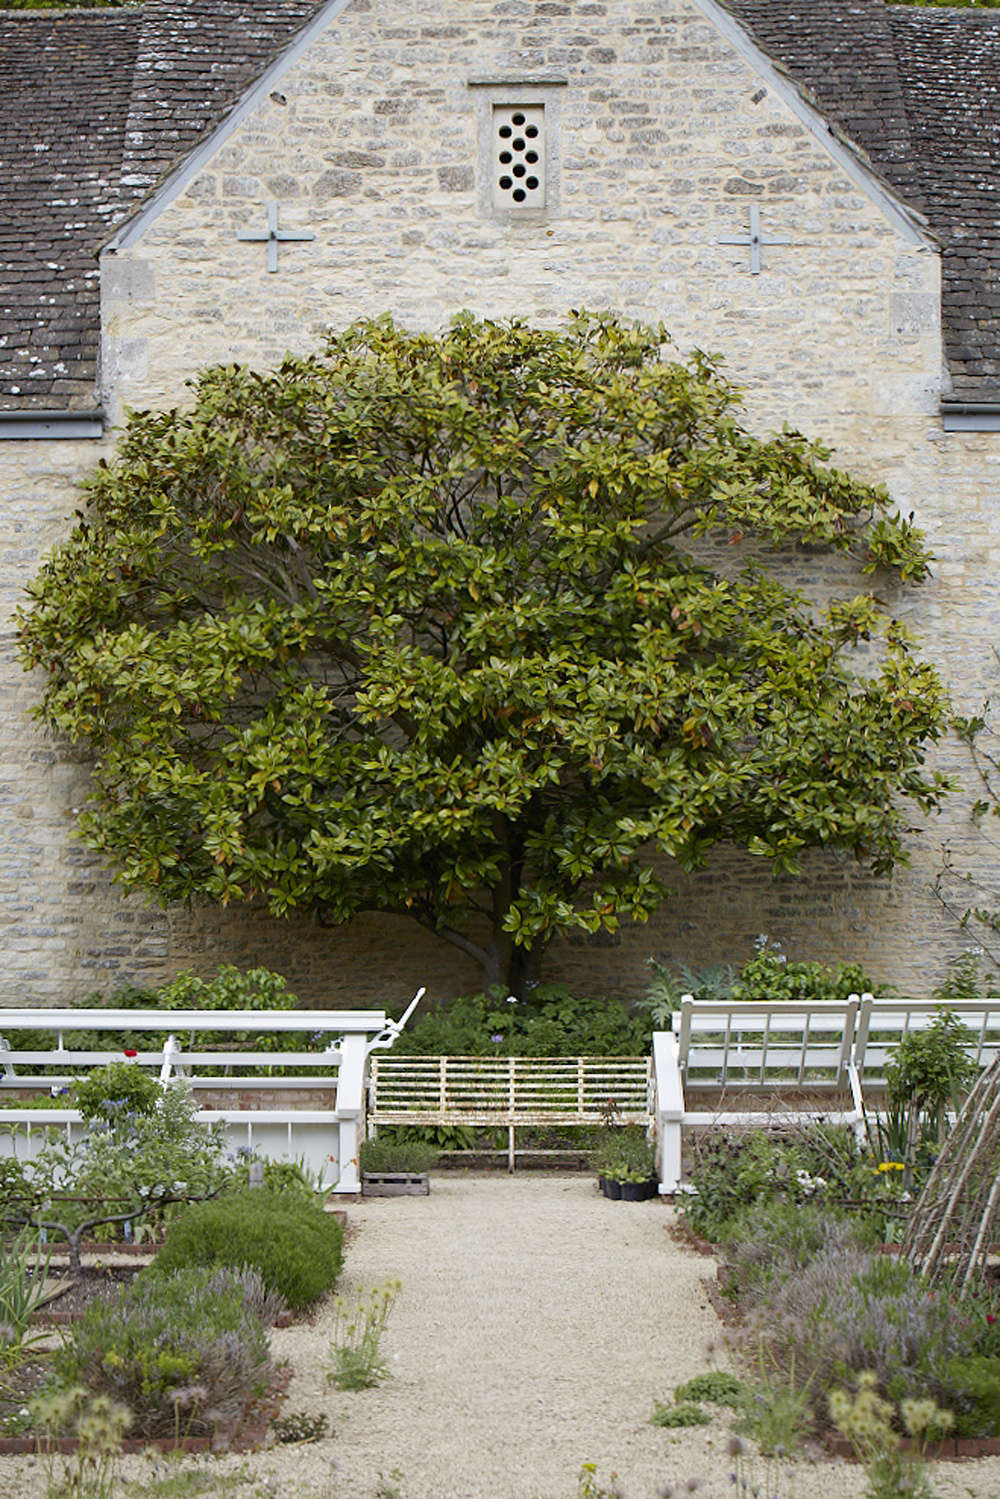 AMagnolia grandiflora adorns the dovecote in the walled garden at Bayntun Flowers. It was taken from a cutting of an older specimen that grew againstthe house.